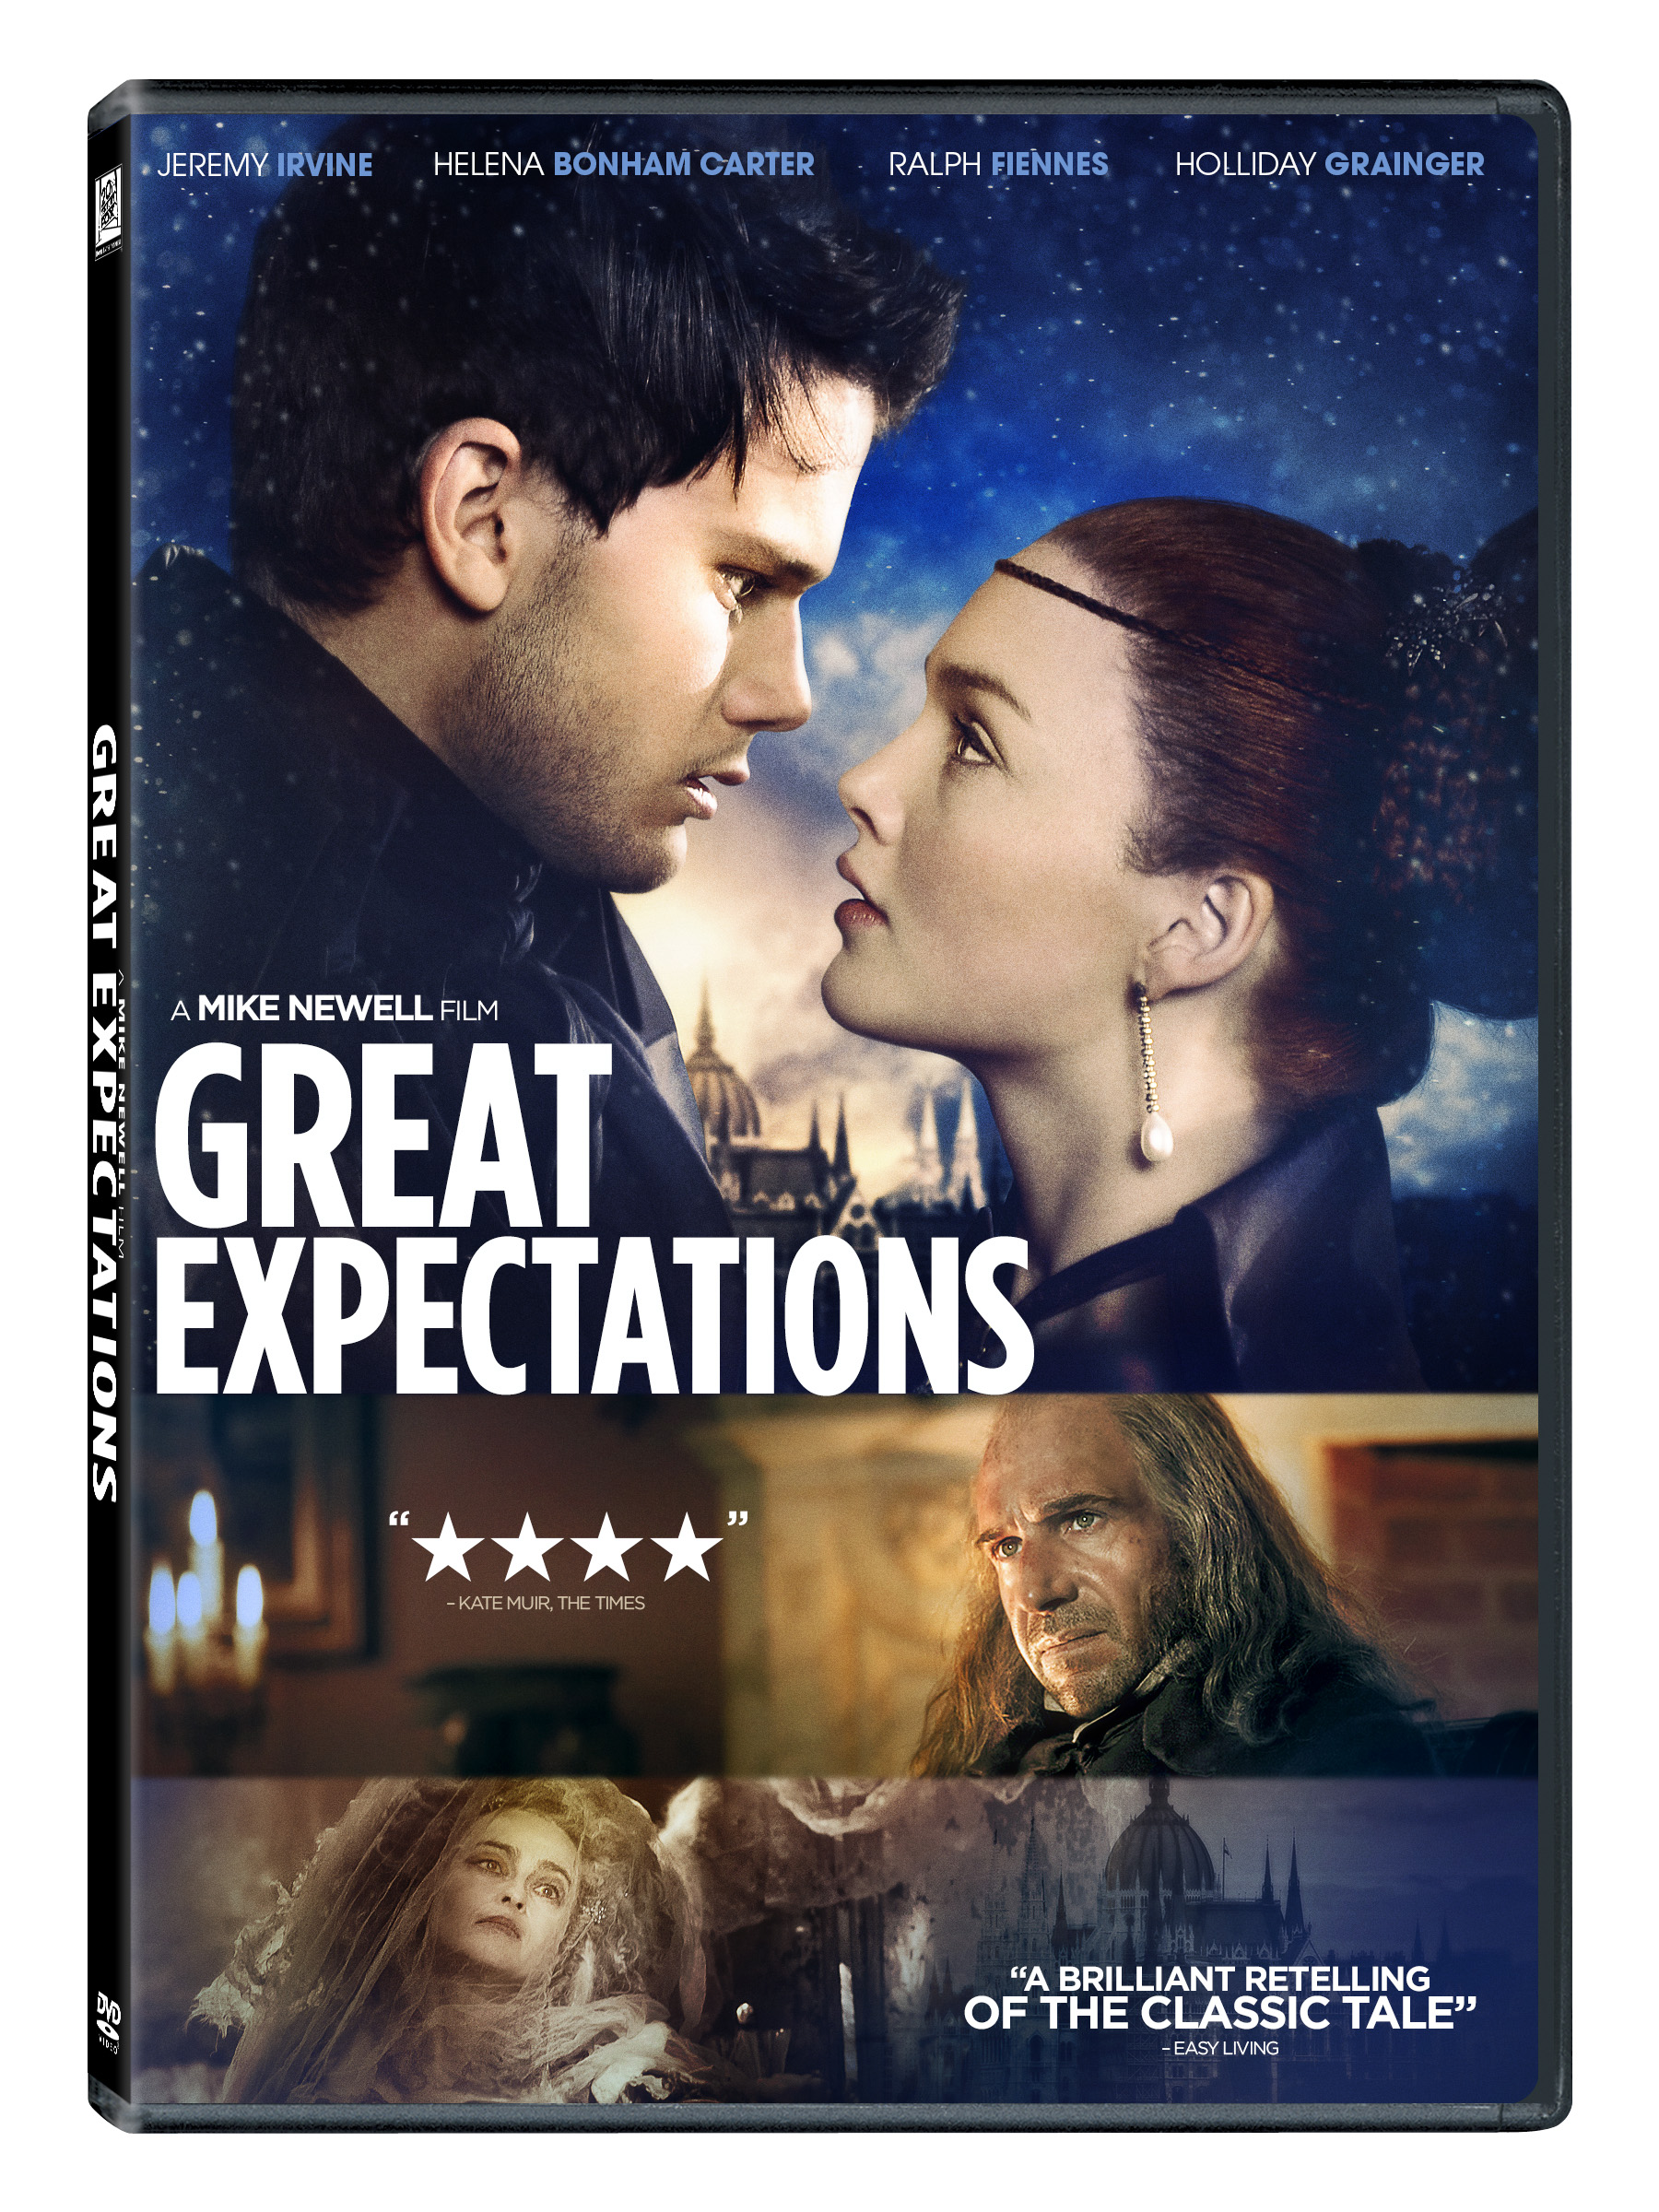 Ralph Fiennes, Helena Bonham Carter, Holliday Grainger, and Jeremy Irvine in Great Expectations (2012)